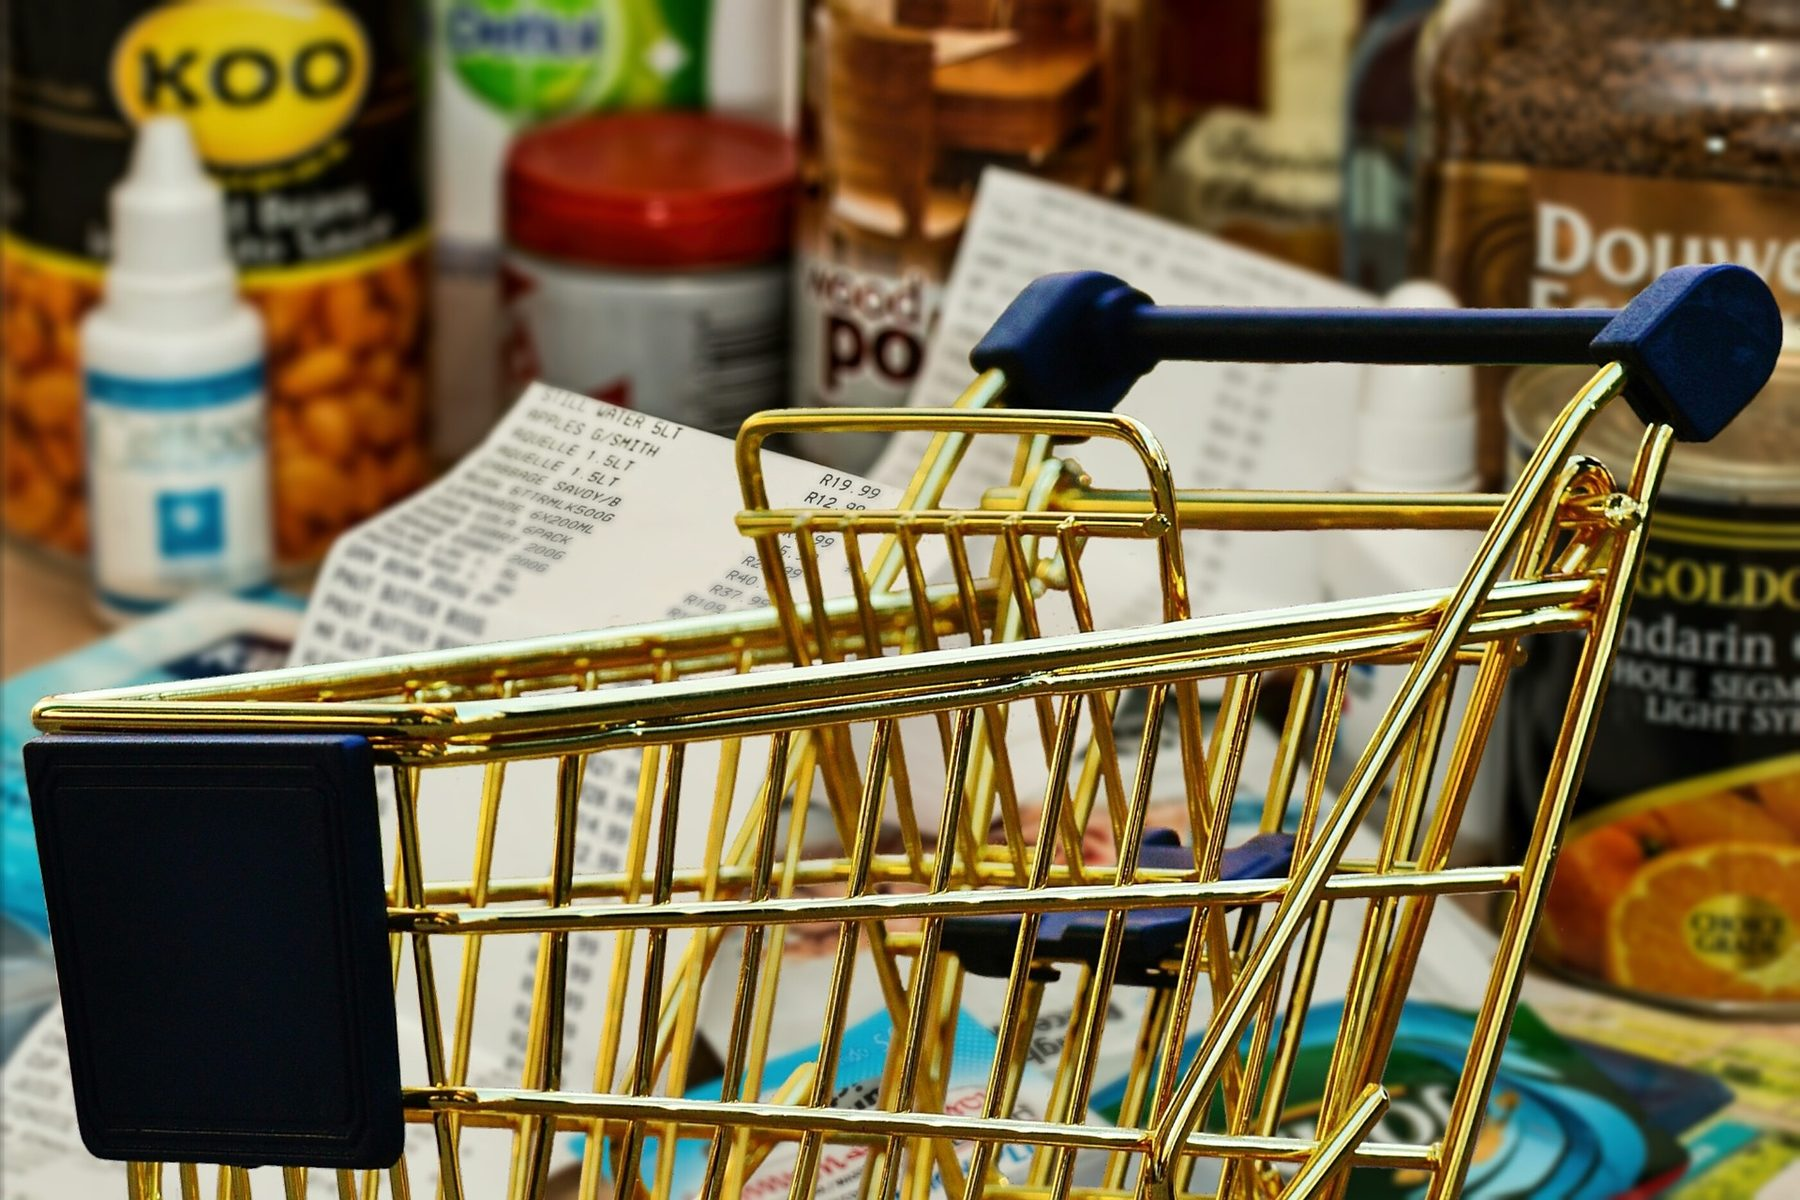 Site Image (Shopping Trolley, Shops, Supermarket, Food, Shelves, Stock)